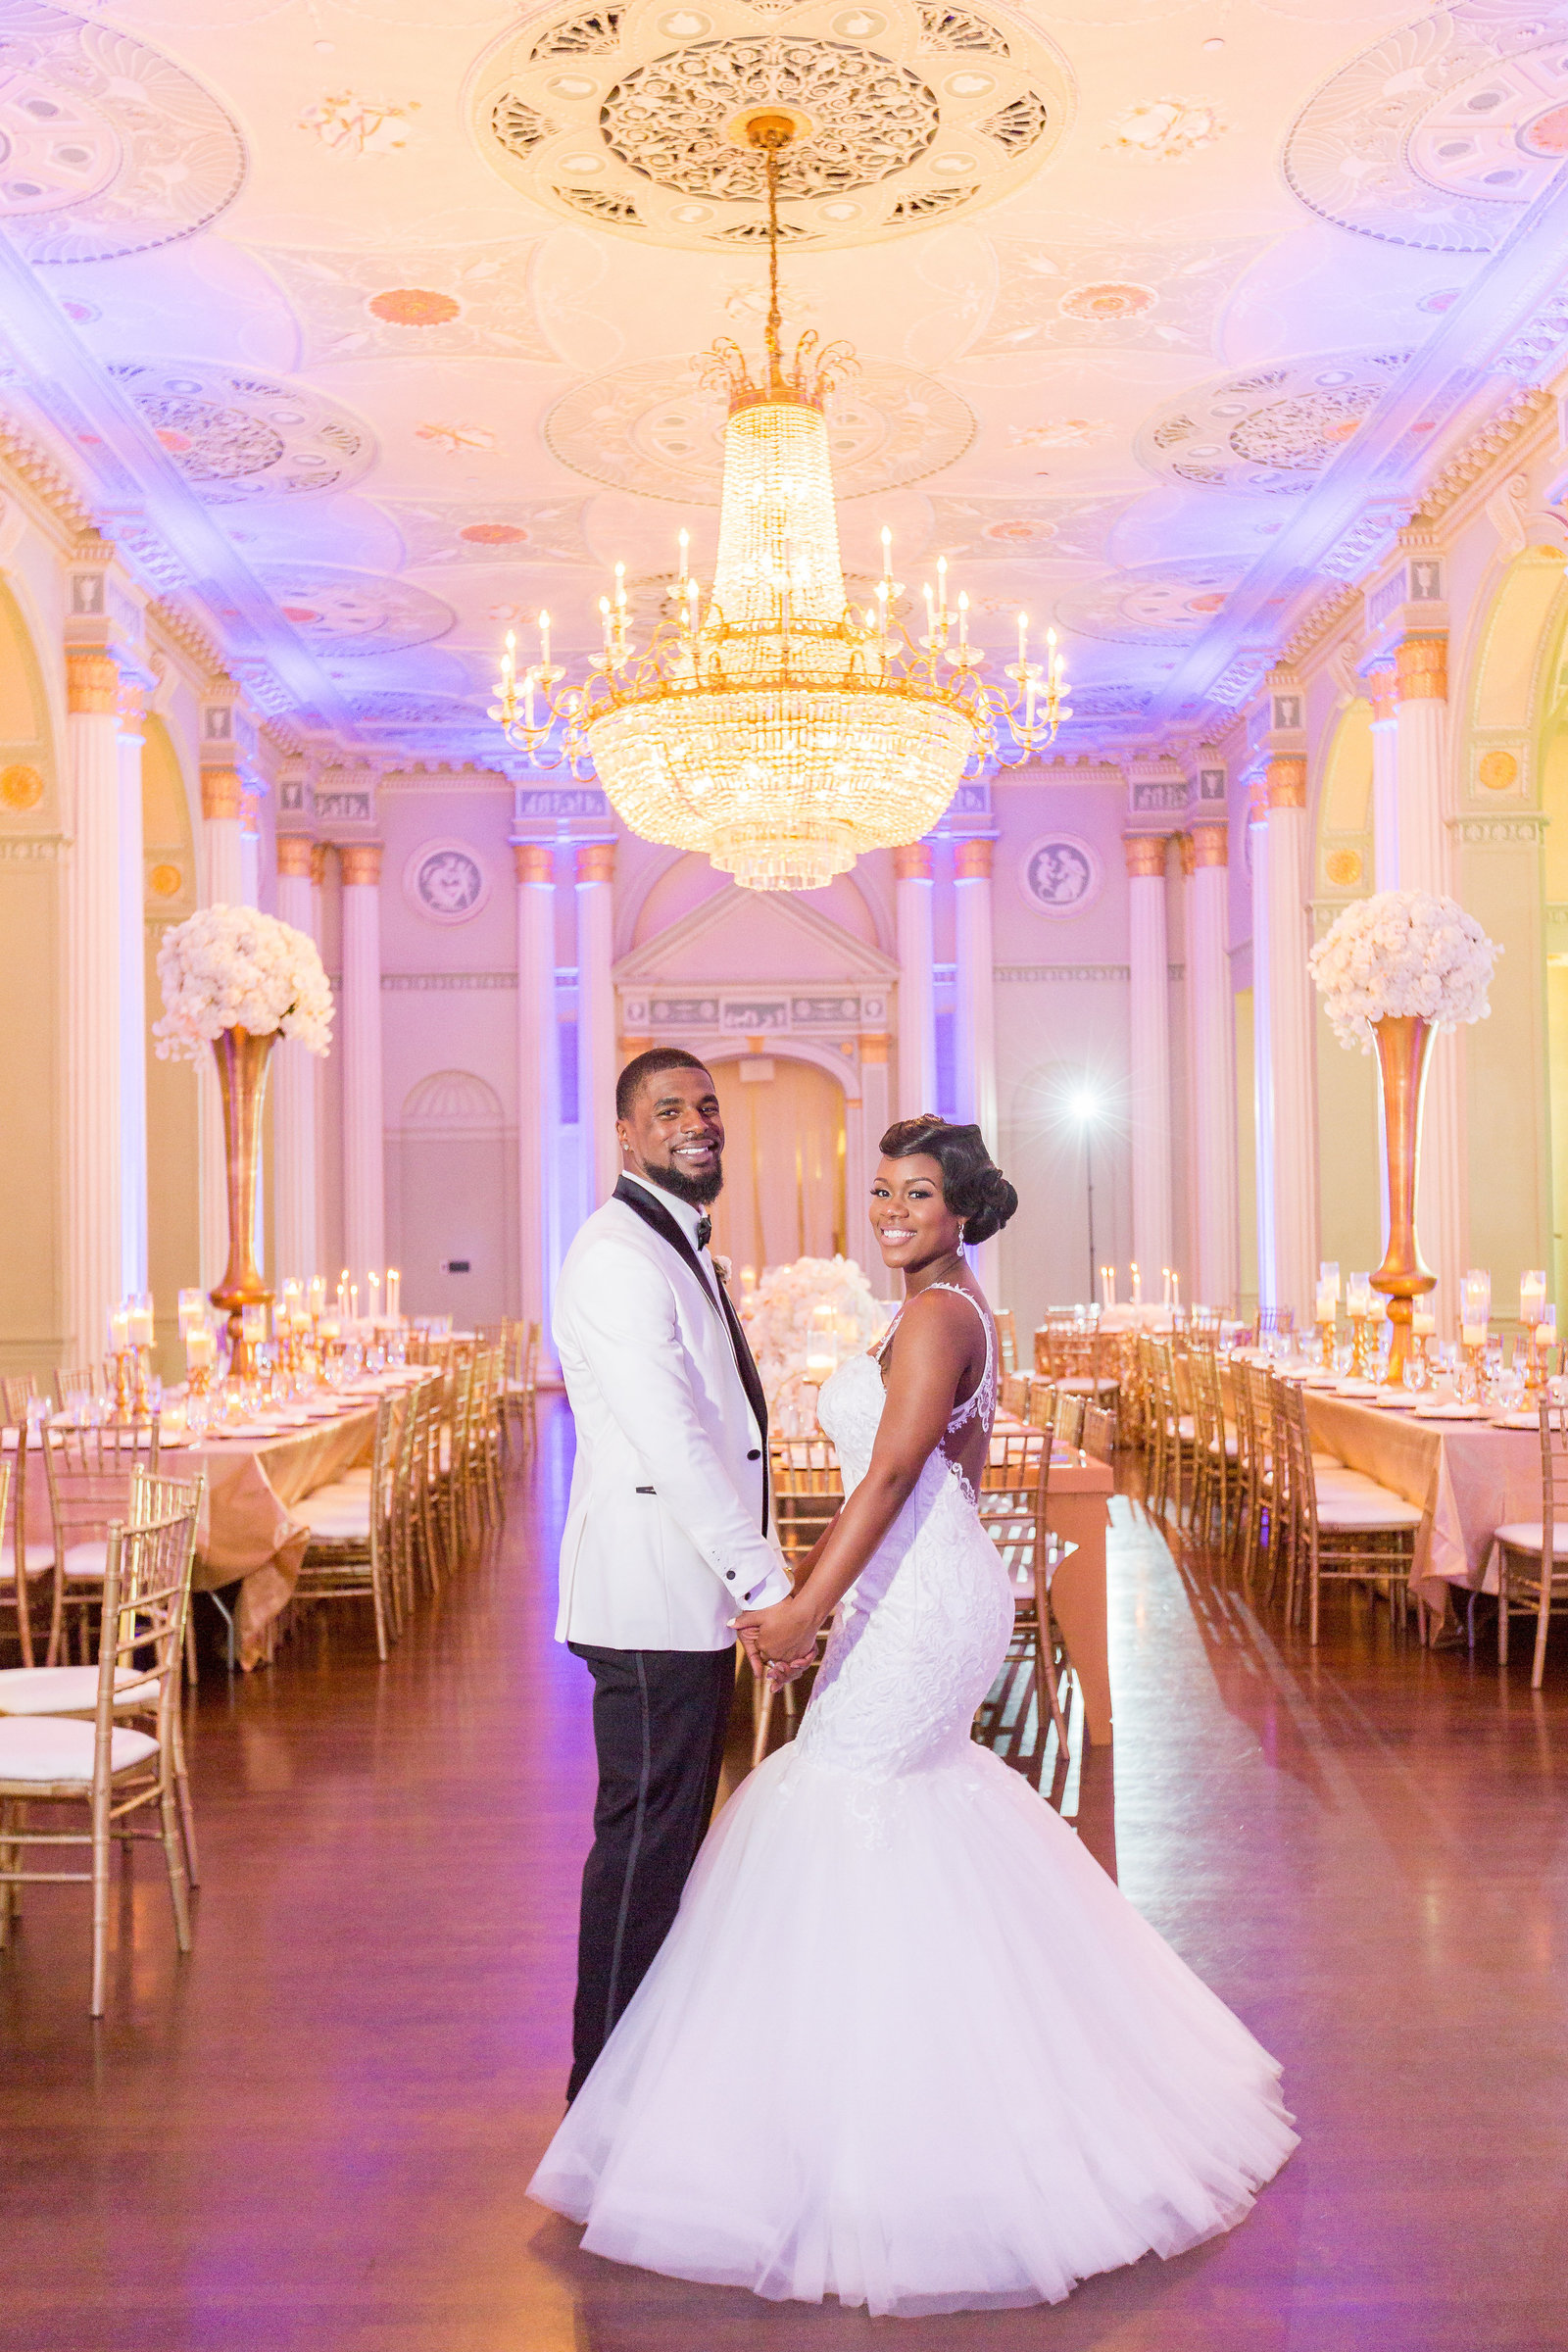 Biltmore Ballrooms Wedding Atlanta - Mecca Gamble Photography